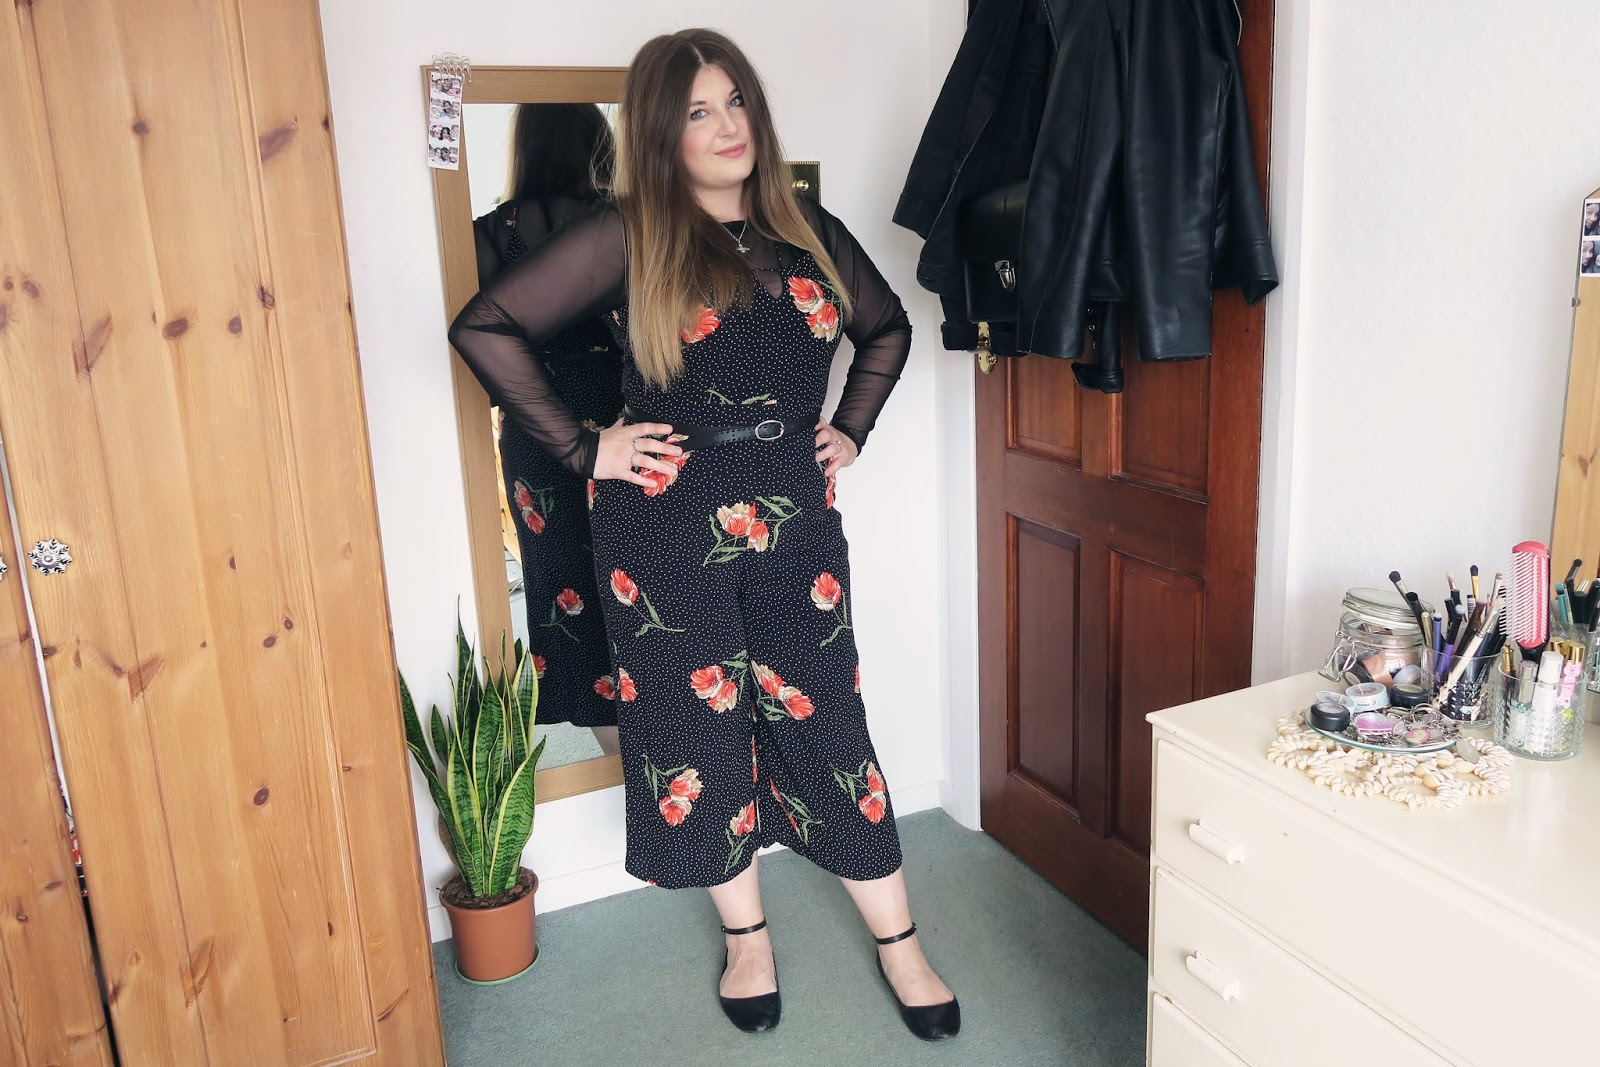 Wearing a floral playsuit with a black mesh top underneath